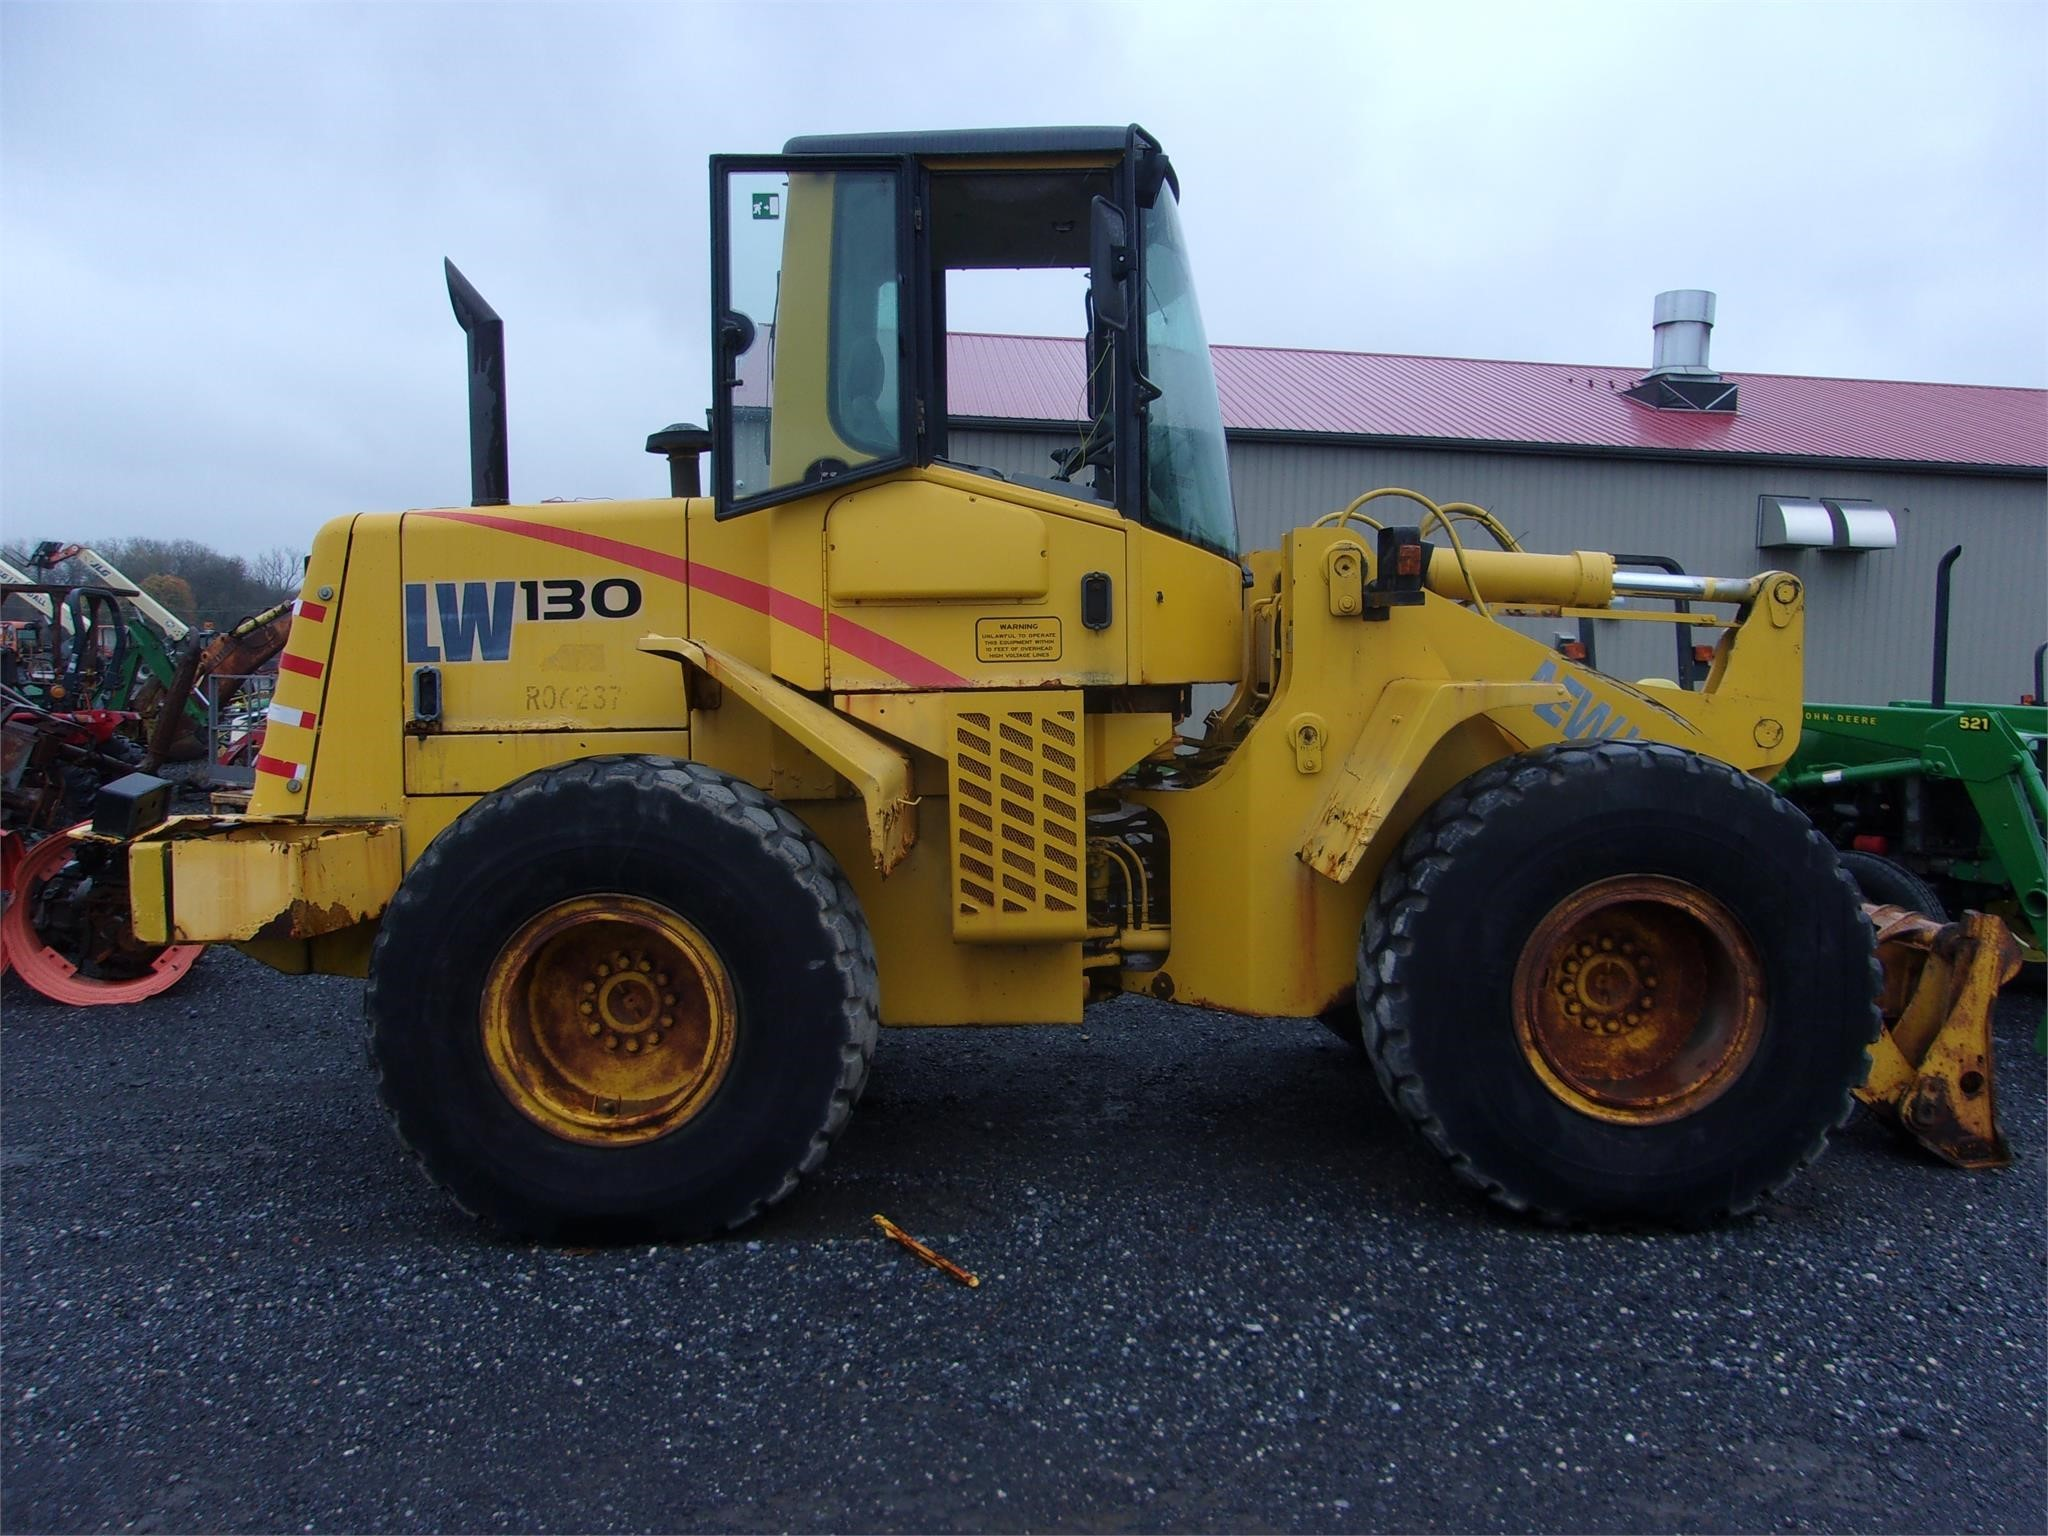 New Holland LW130 Wheel Loader